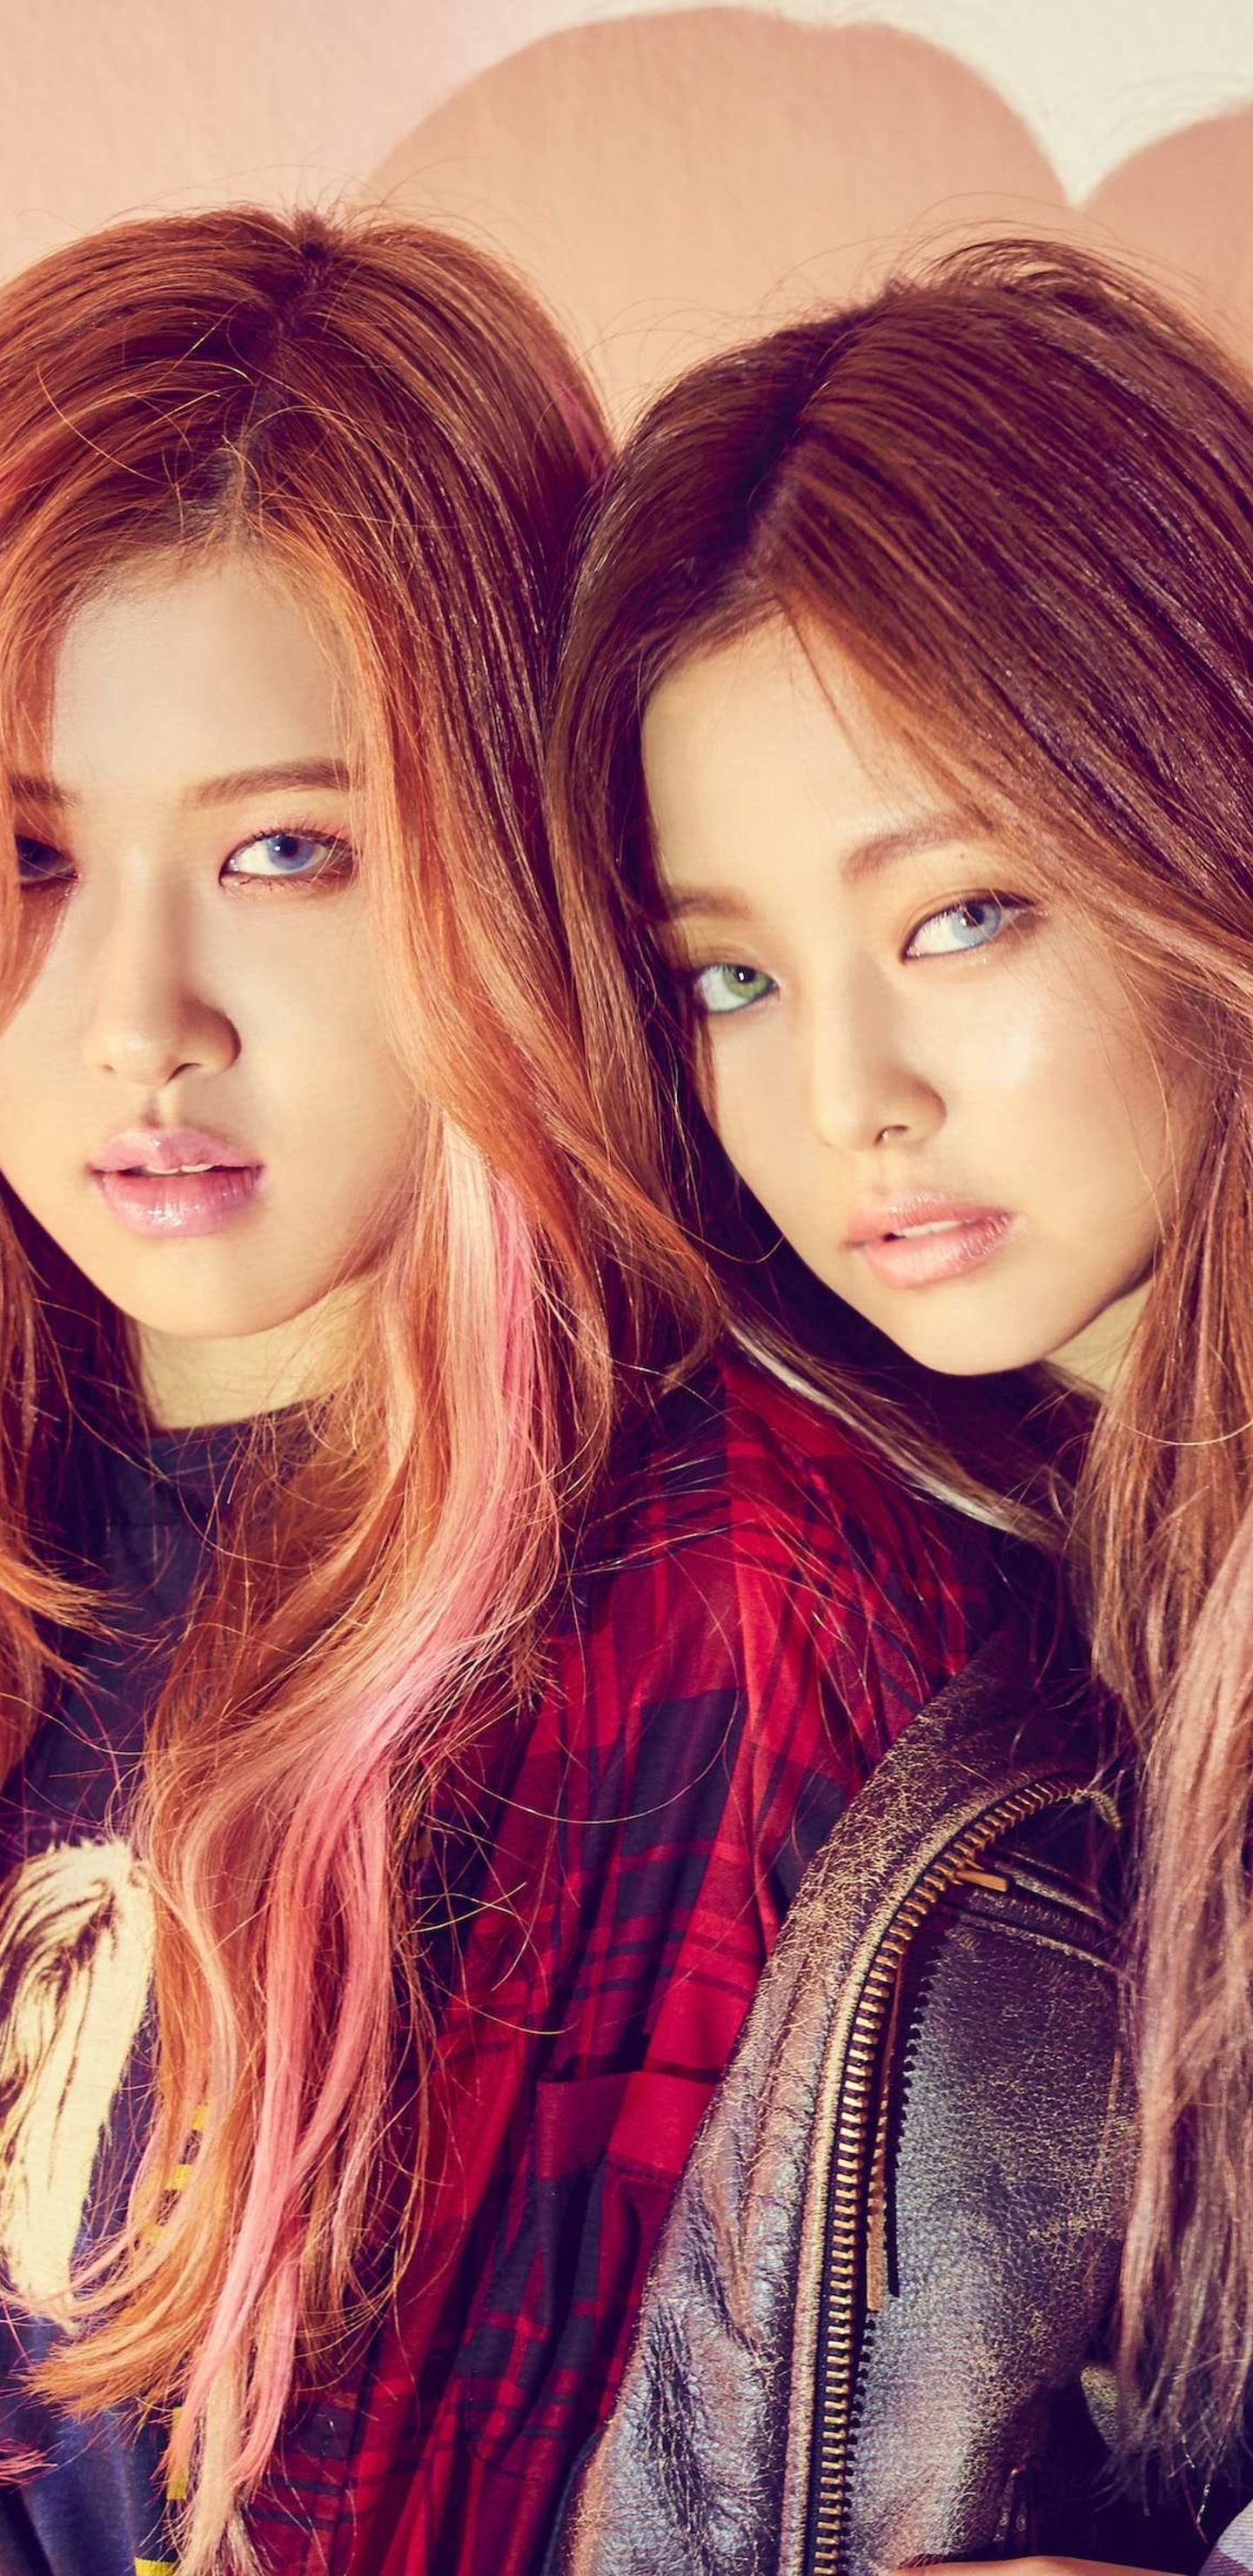 1440x2960 Blackpink Samsung Galaxy Note 9 8 S9 S8 S8 Qhd Hd 4k Wallpapers Images Backgrounds Photos And Pictures